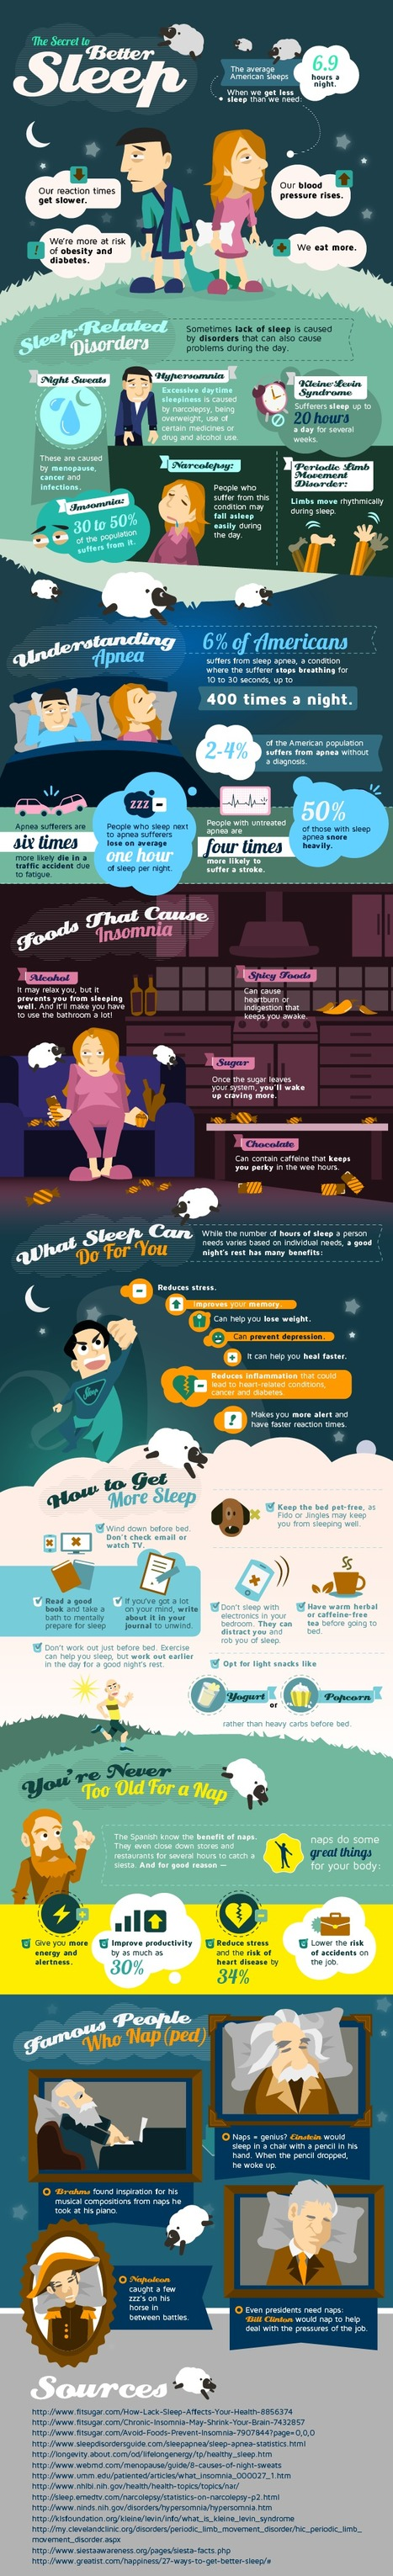 The Secret to Better Sleep {Infographic} | InfoGraphics | Scoop.it